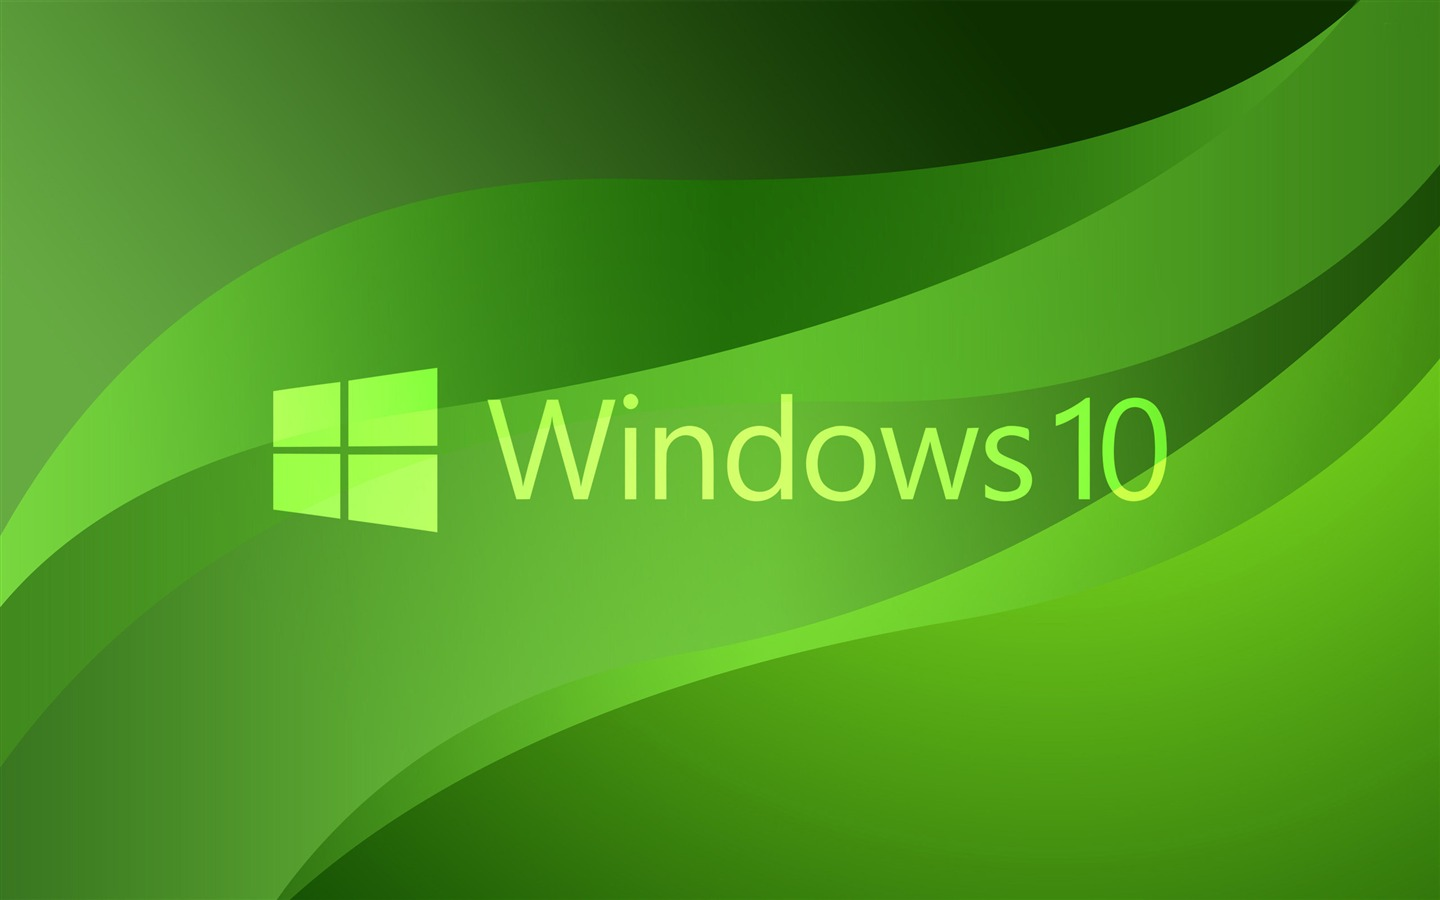 Windows 10 Hd Theme Desktop Wallpaper 15 Preview 10wallpaper Com